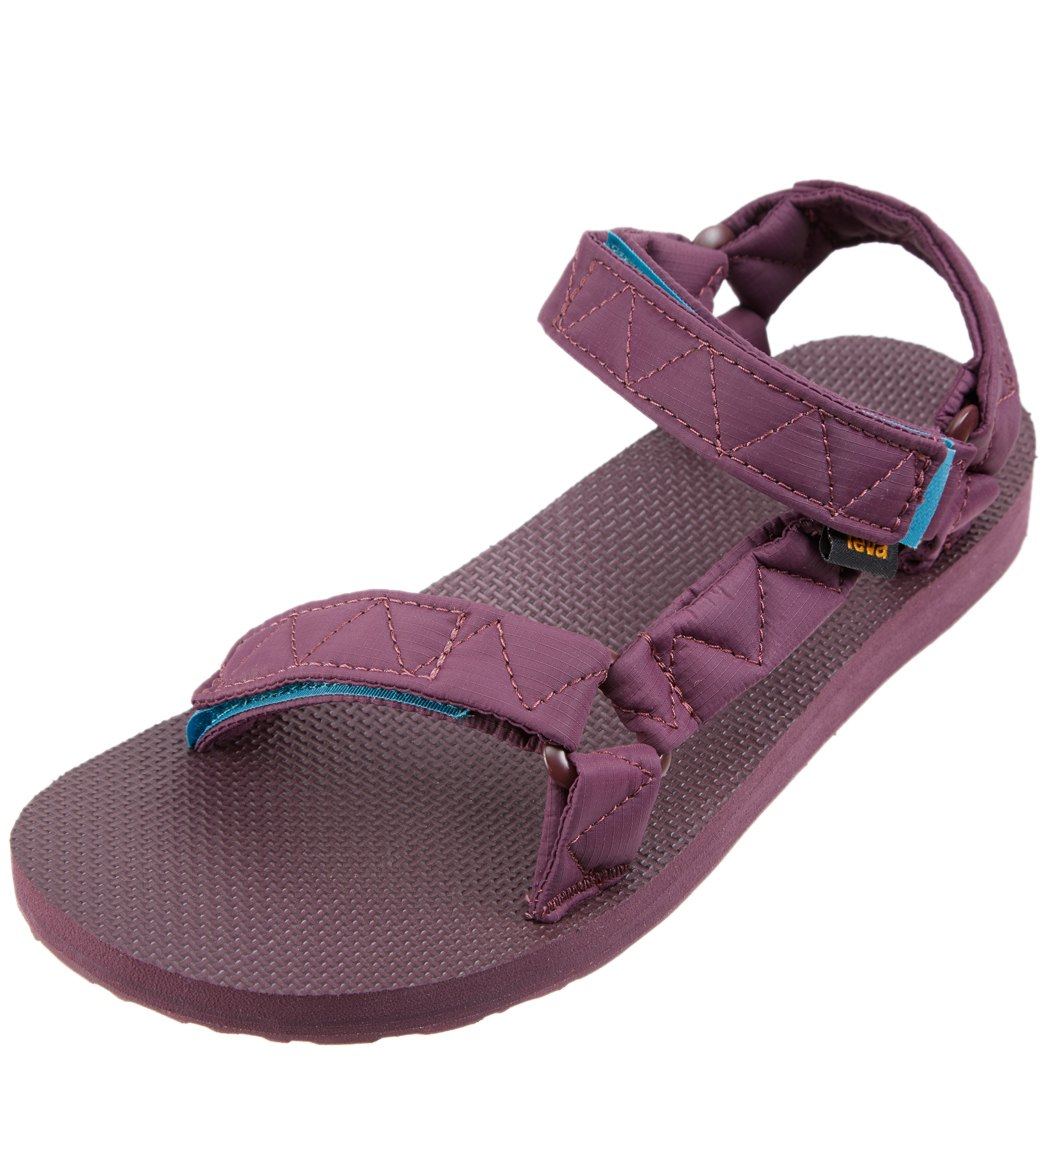 382939cb3862 Teva Women s Original Universal Puff Sandal at SwimOutlet.com - Free  Shipping